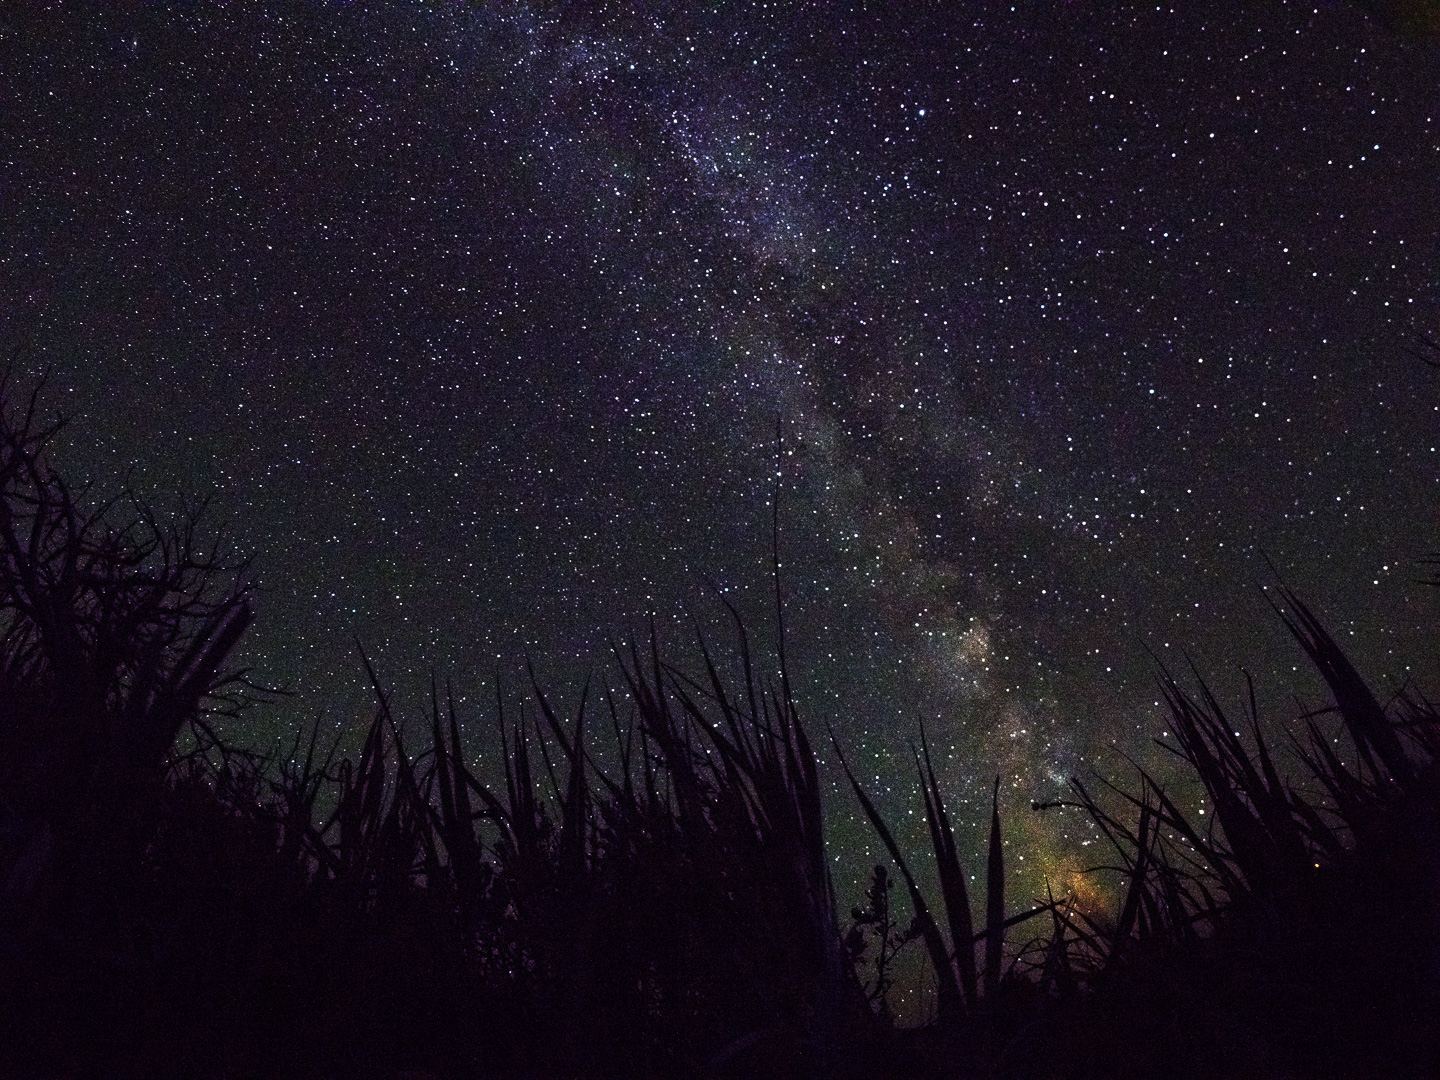 Mirrorless Camera Maniac: Tips For Shooting The Milky Way